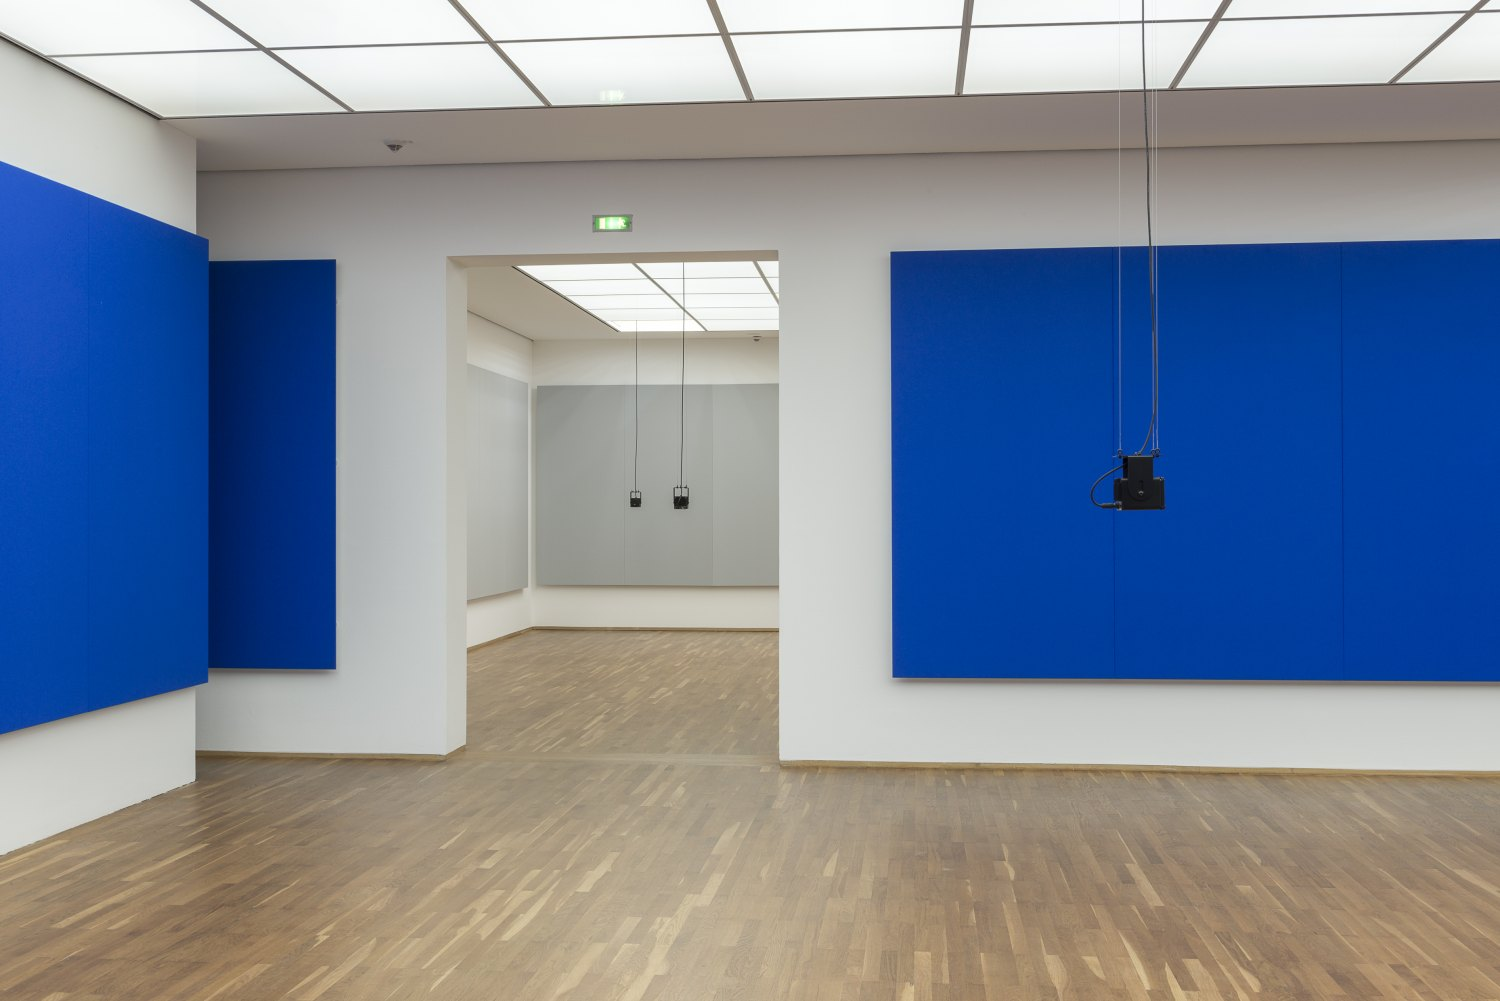 Florian Hecker, Formulations Installation view, Hamburger Bahnhof, Berlin 2015